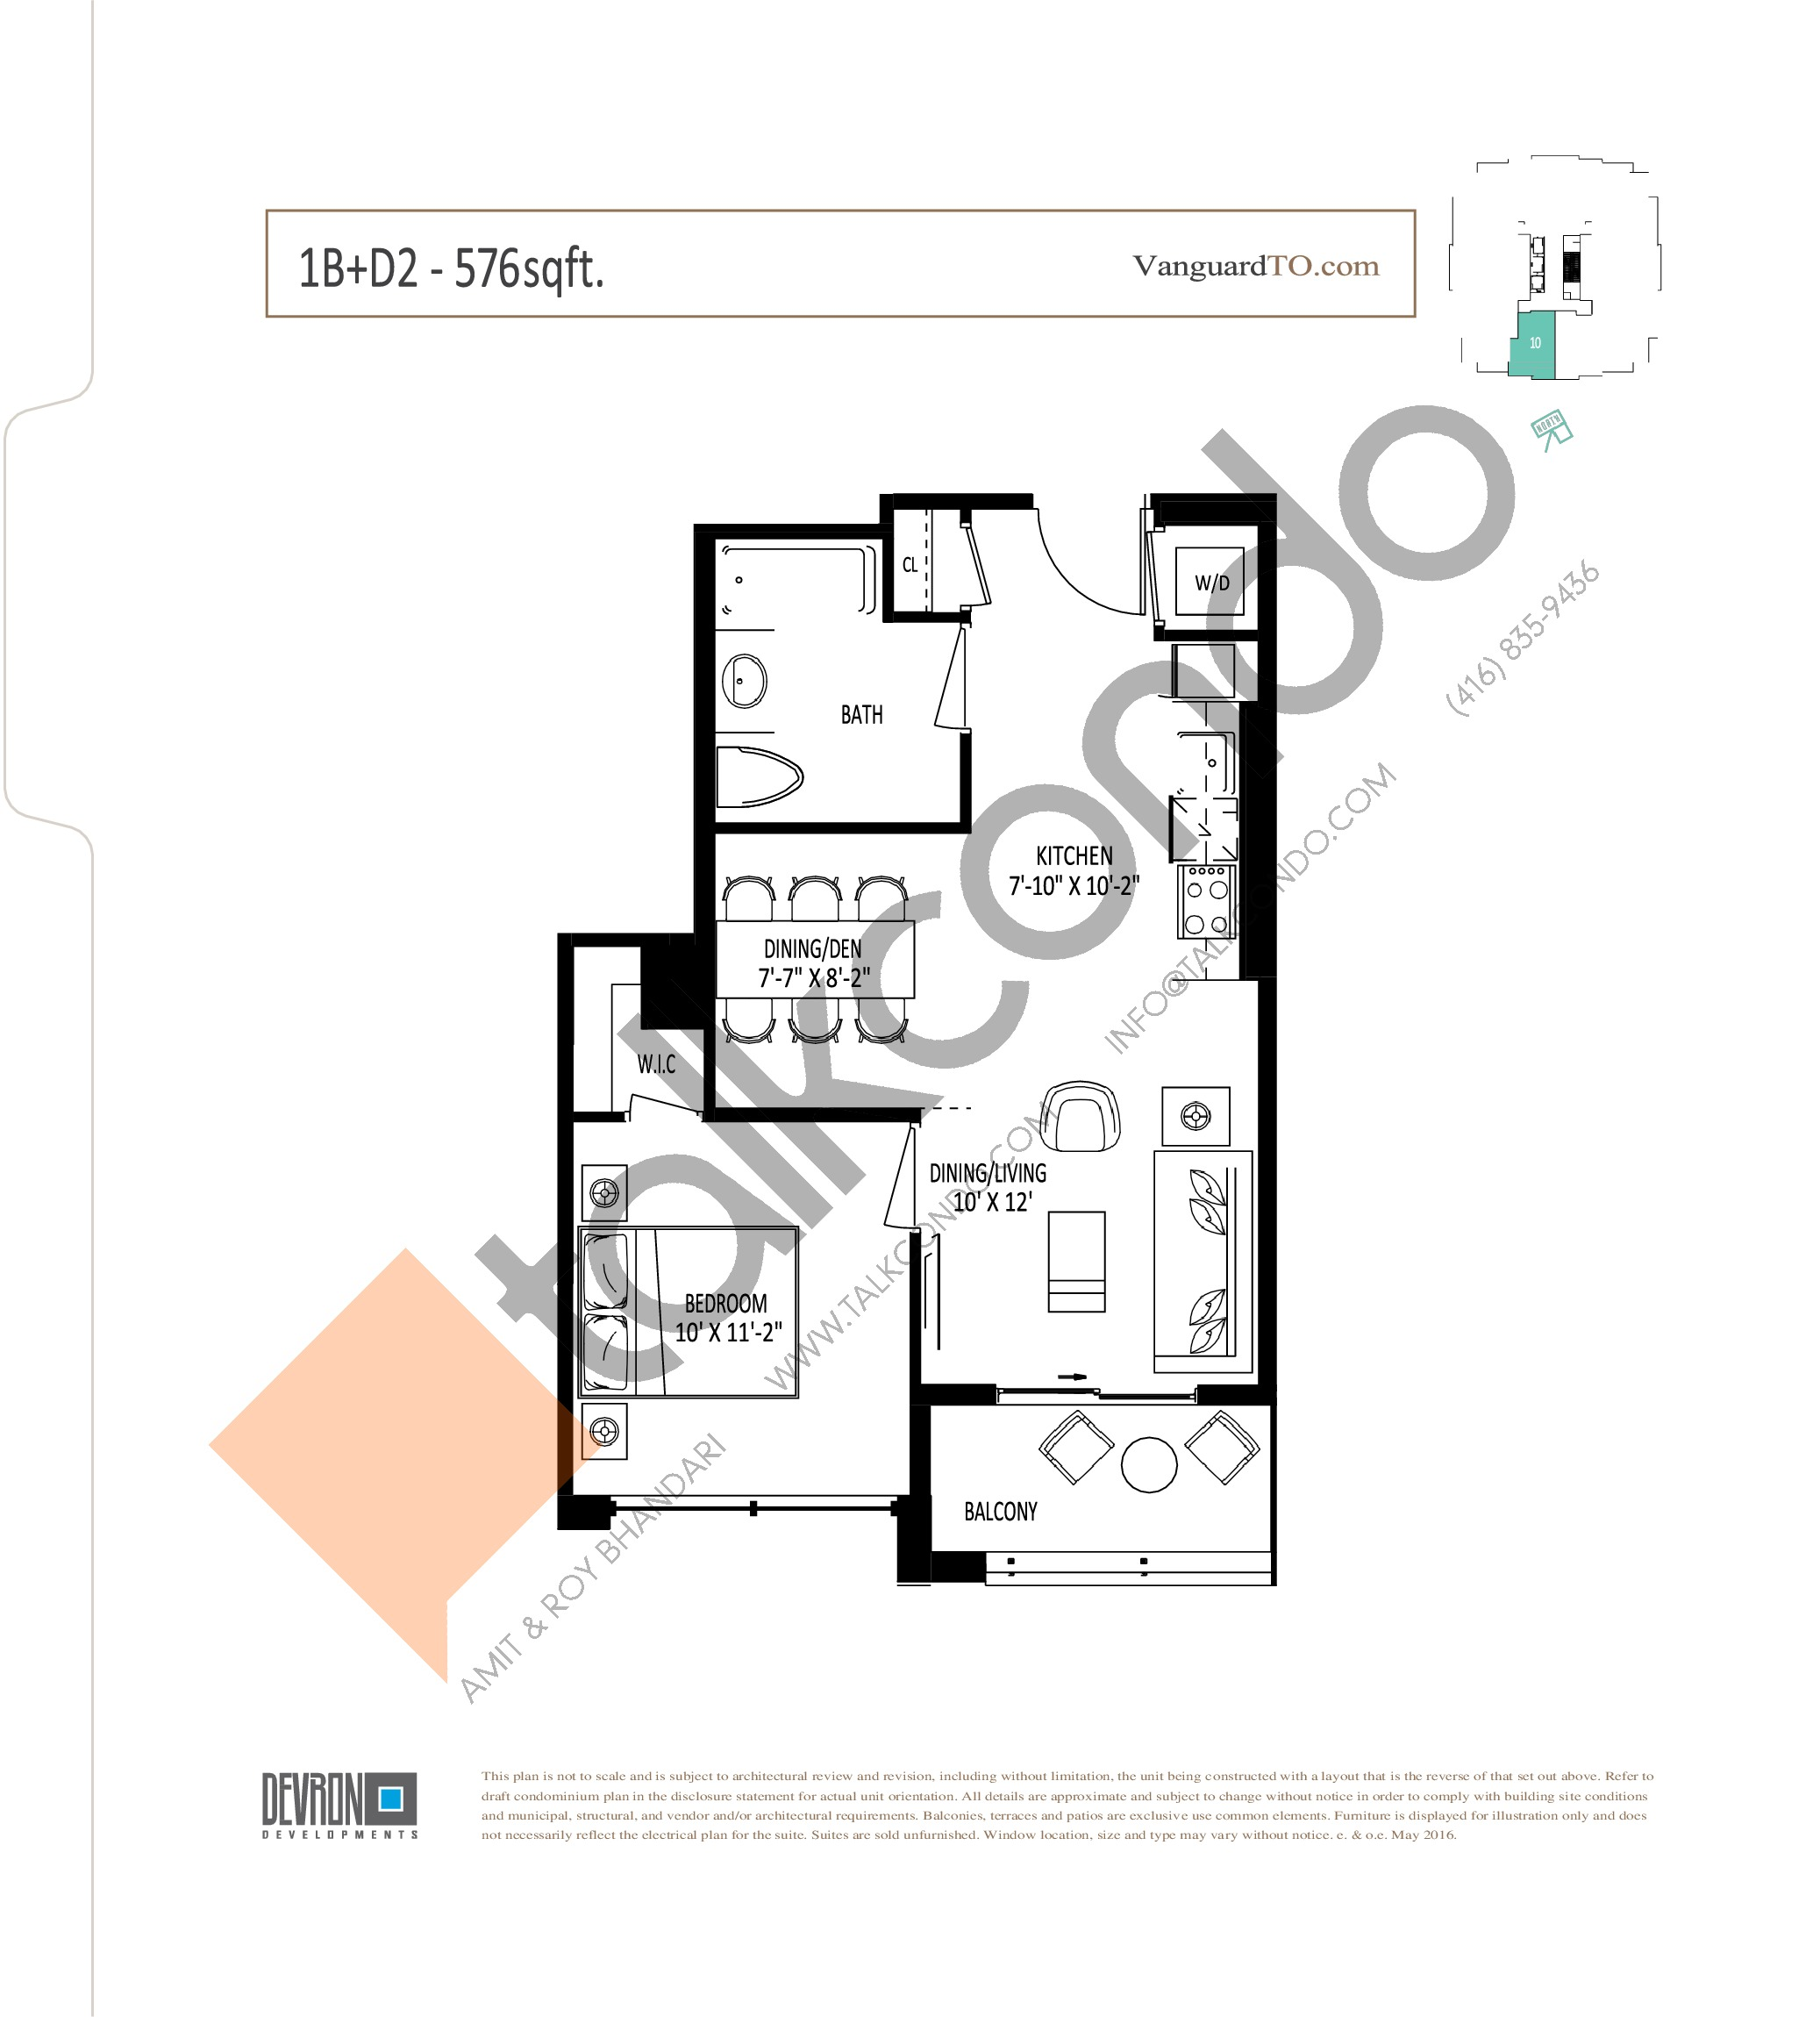 1B+D2 Floor Plan at The Vanguard - 576 sq.ft